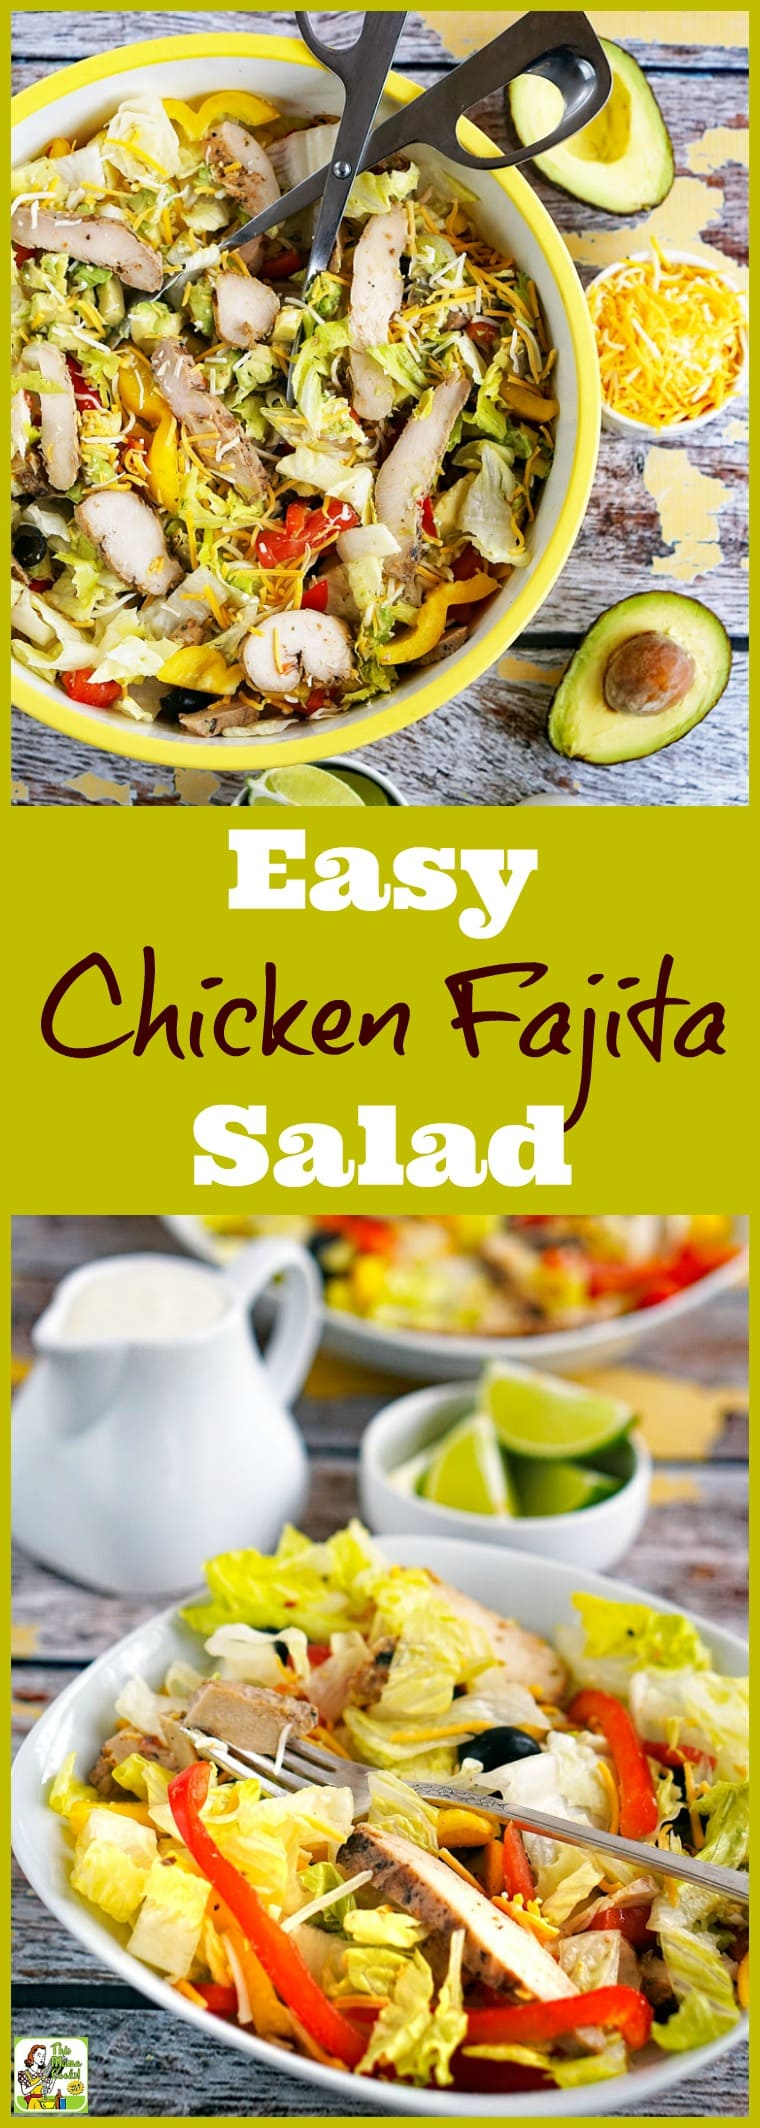 How to Make an Easy Chicken Fajita Salad. This recipe for chicken fajita salad can be made into fajita wraps, too. Click to get this healthy and easy salad recipe. It\'s naturally gluten free.